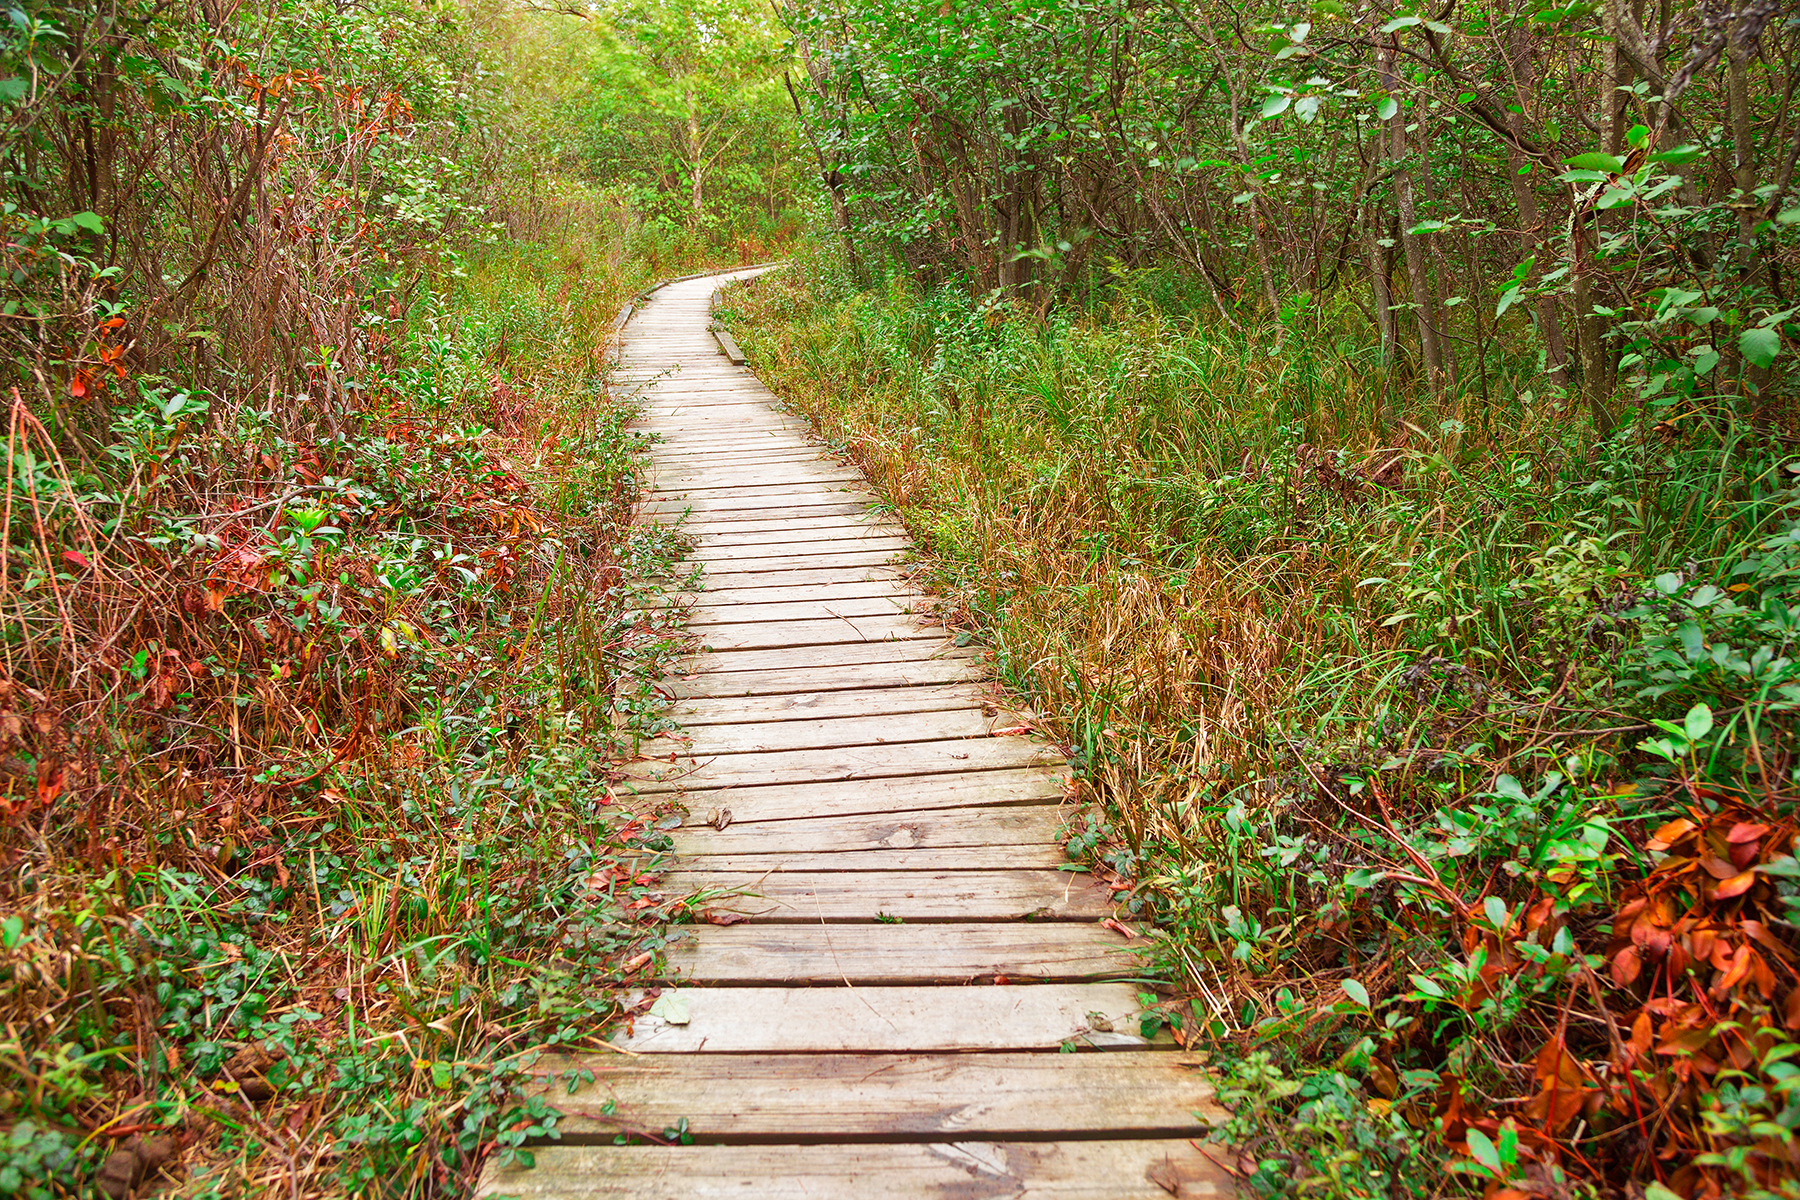 Winding boardwalk trail - dolly sods photo